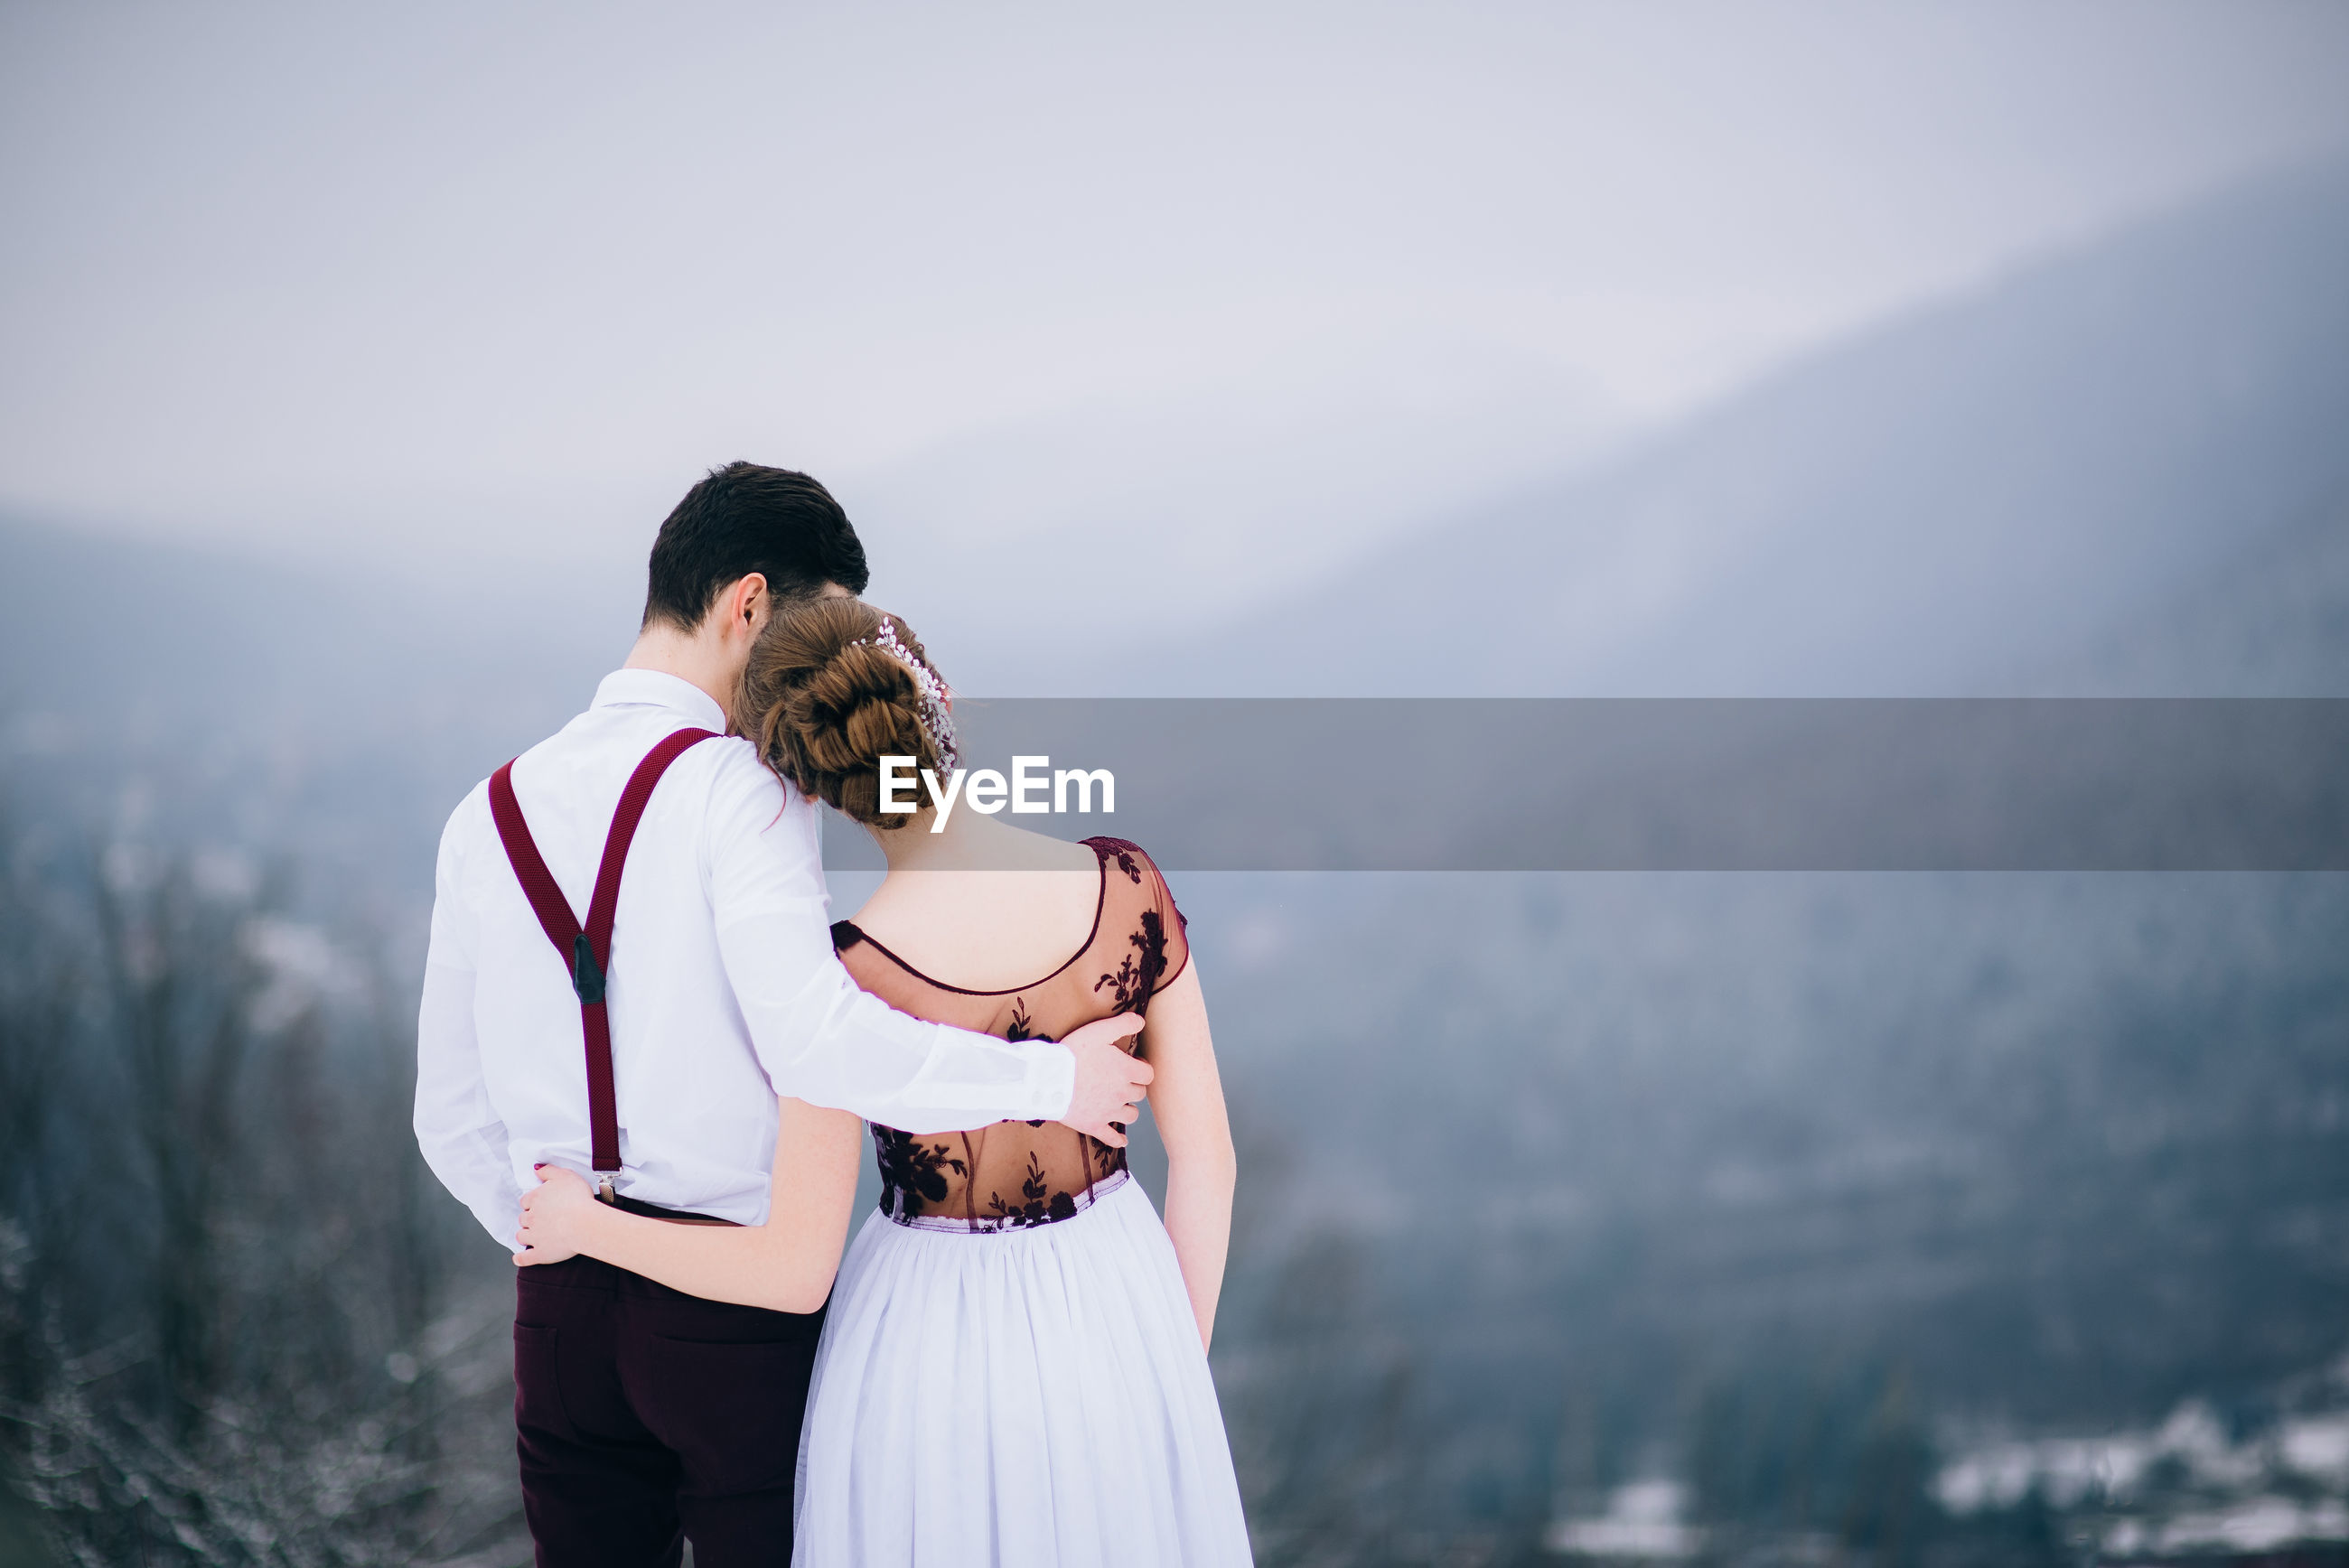 COUPLE STANDING ON MOUNTAIN AGAINST MOUNTAINS